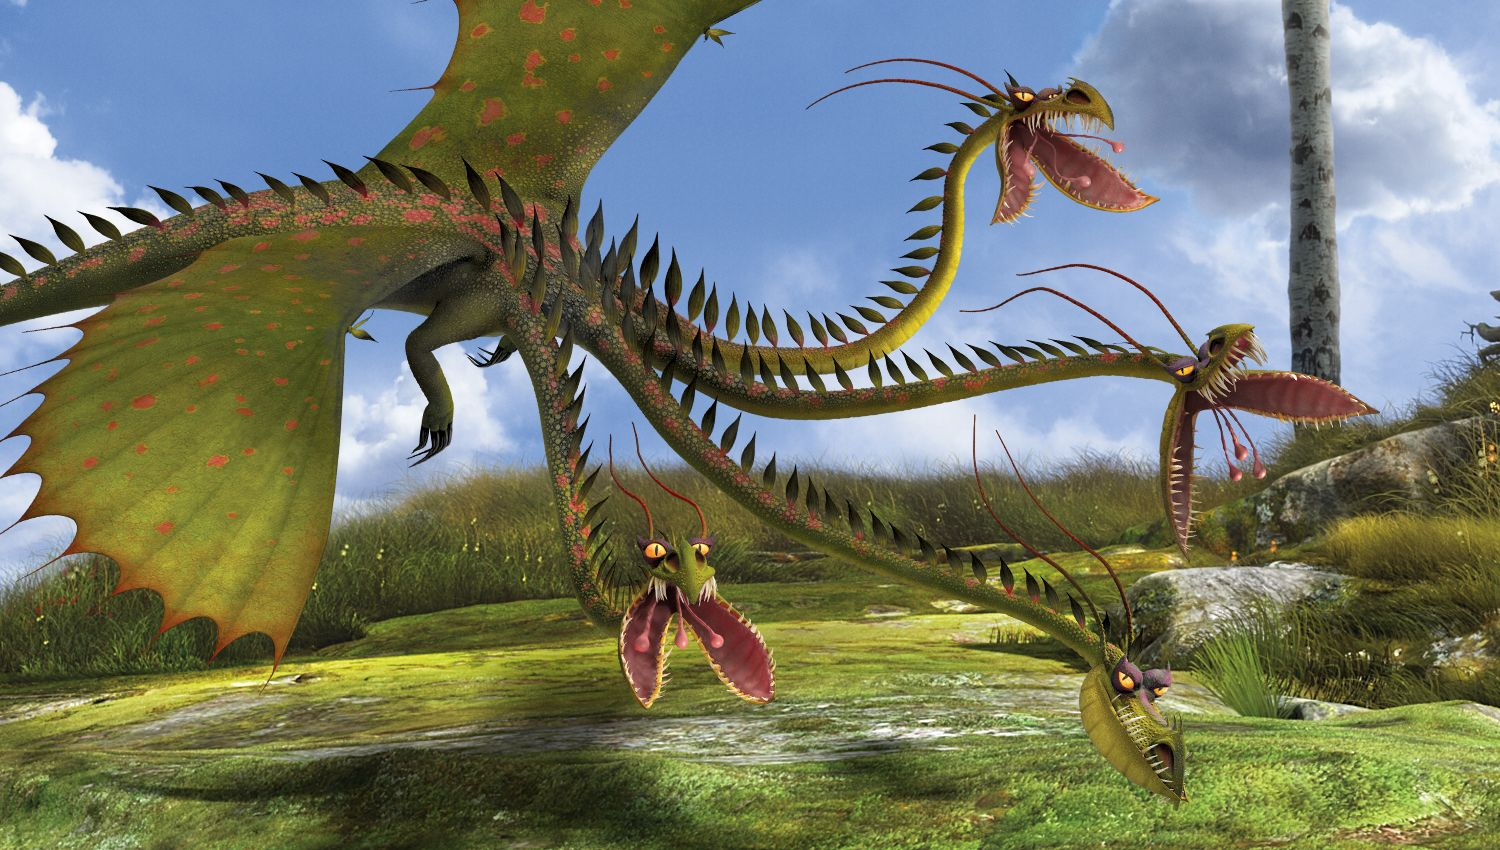 Learn how to draw changewing from how to train your dragon how to - While As Beautiful And Serene As An Exotic Flower Upon First Blush The Four Headed Snaptrapper Is Actually One Of The Most Insidious And Deadly Dragons